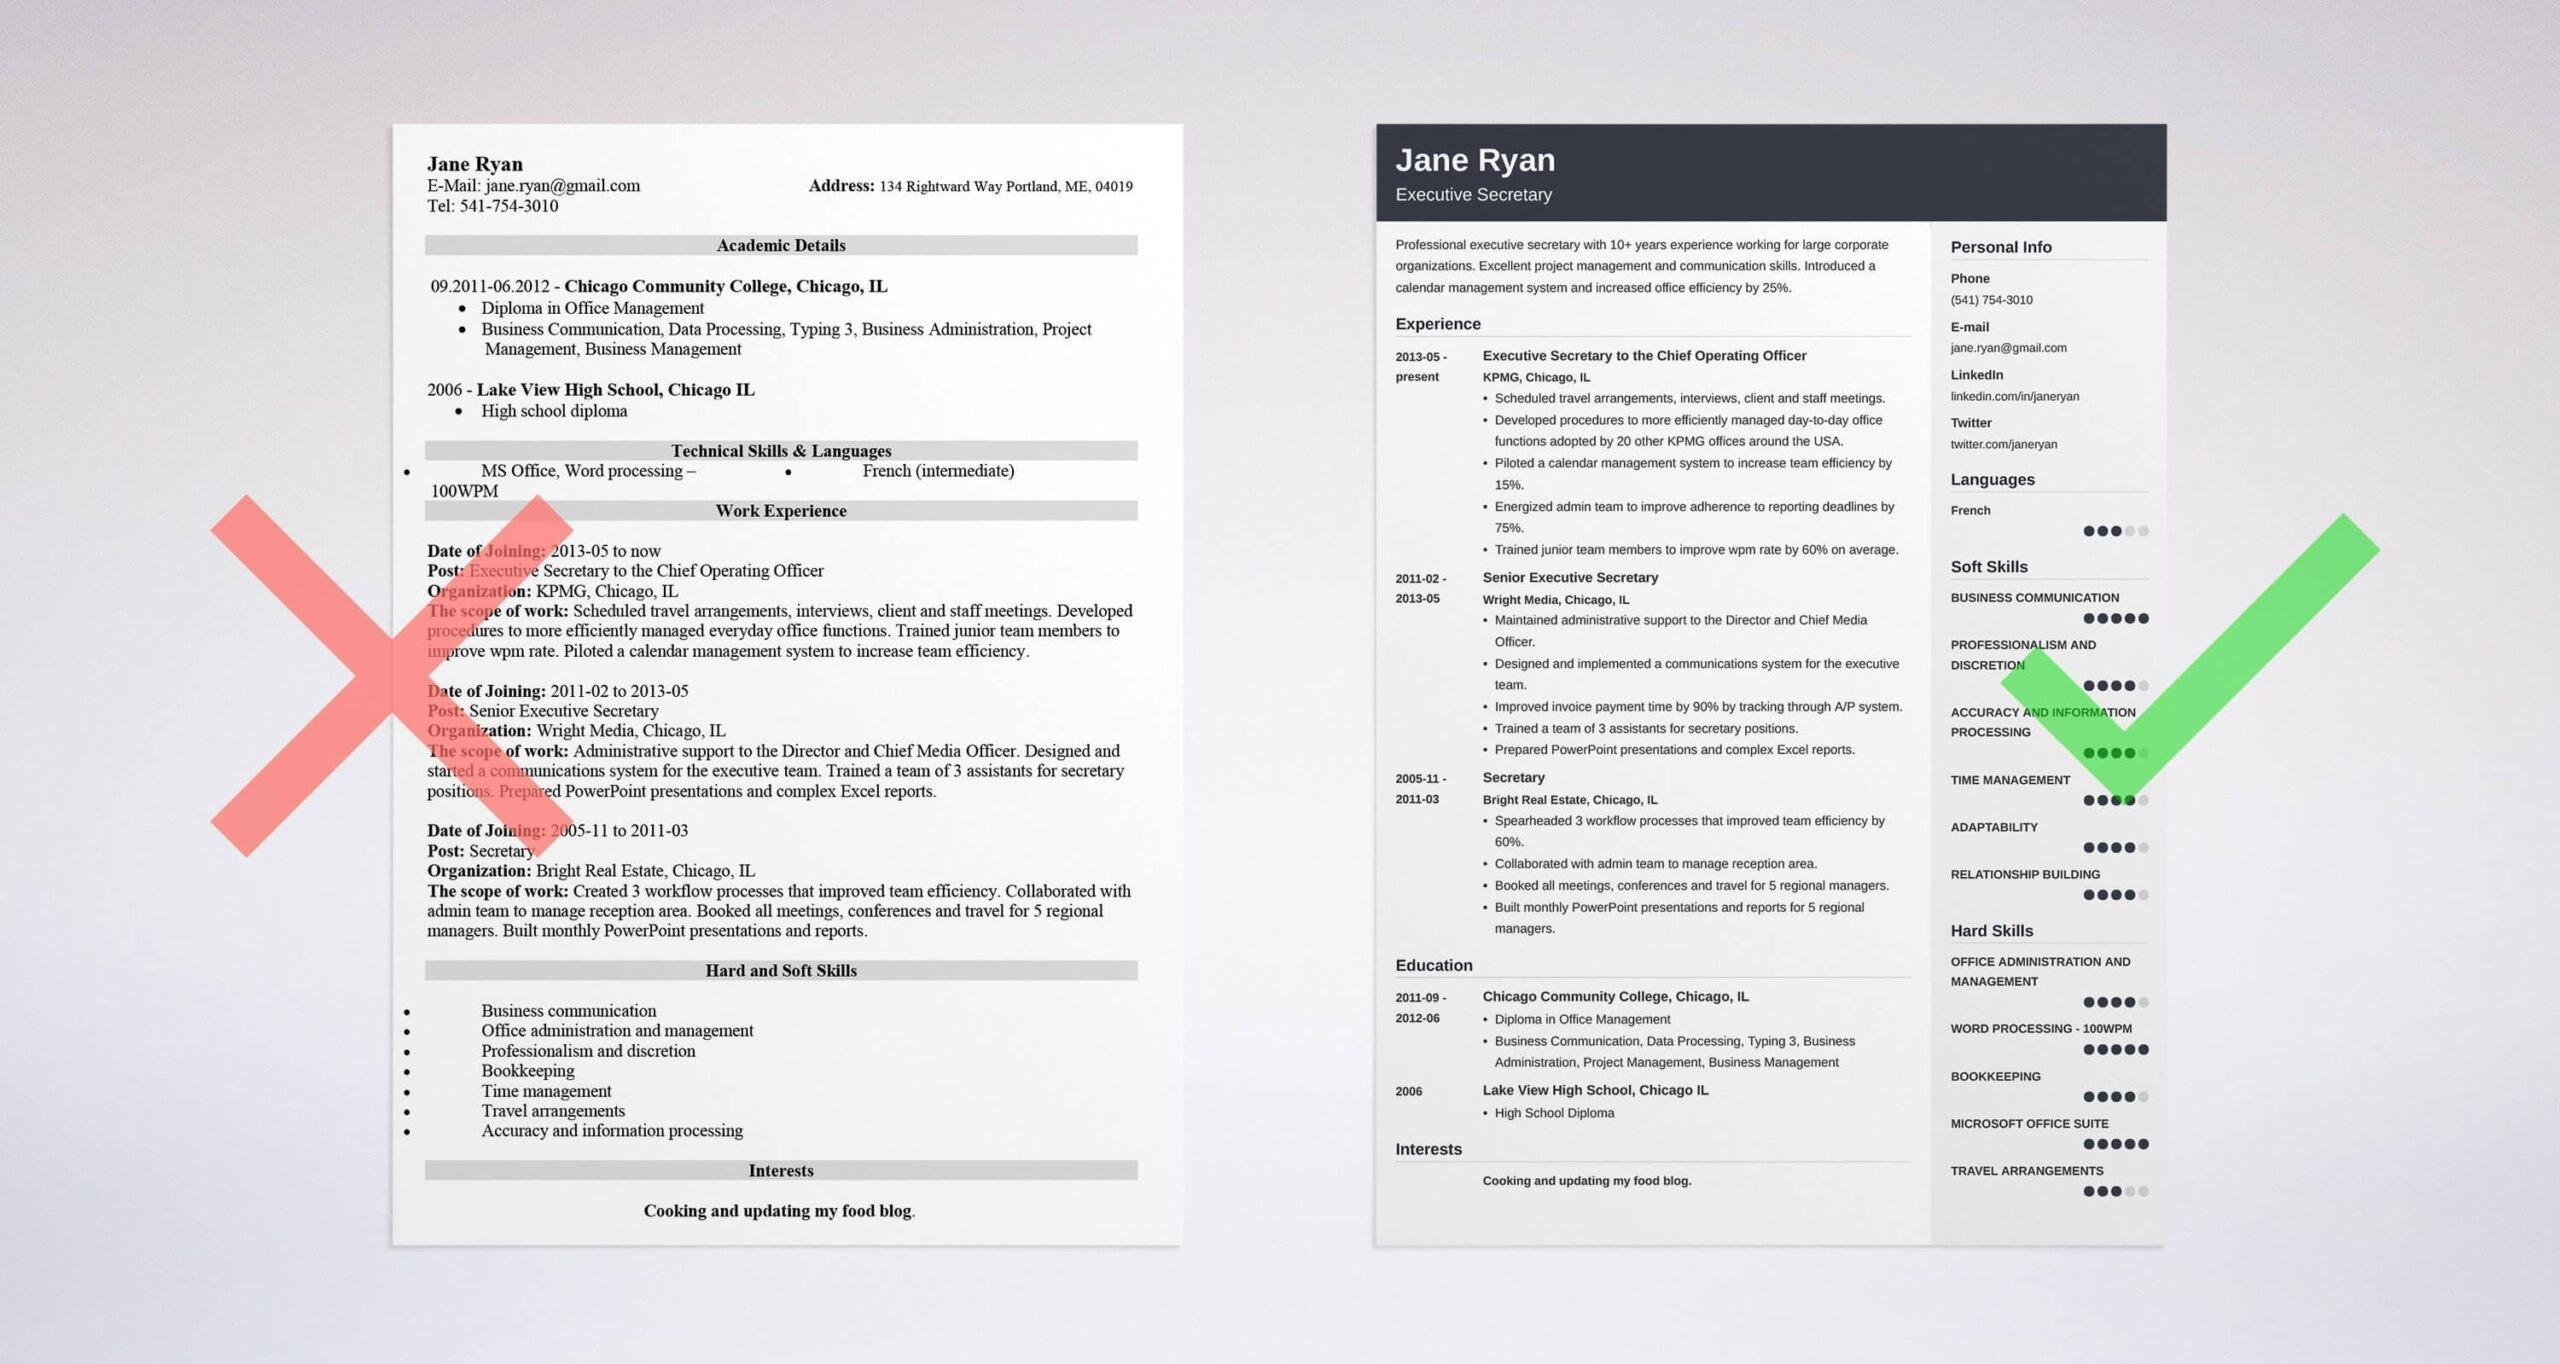 secretary resume examples of skills duties objectives template free samples updated Resume Secretary Resume Template Free